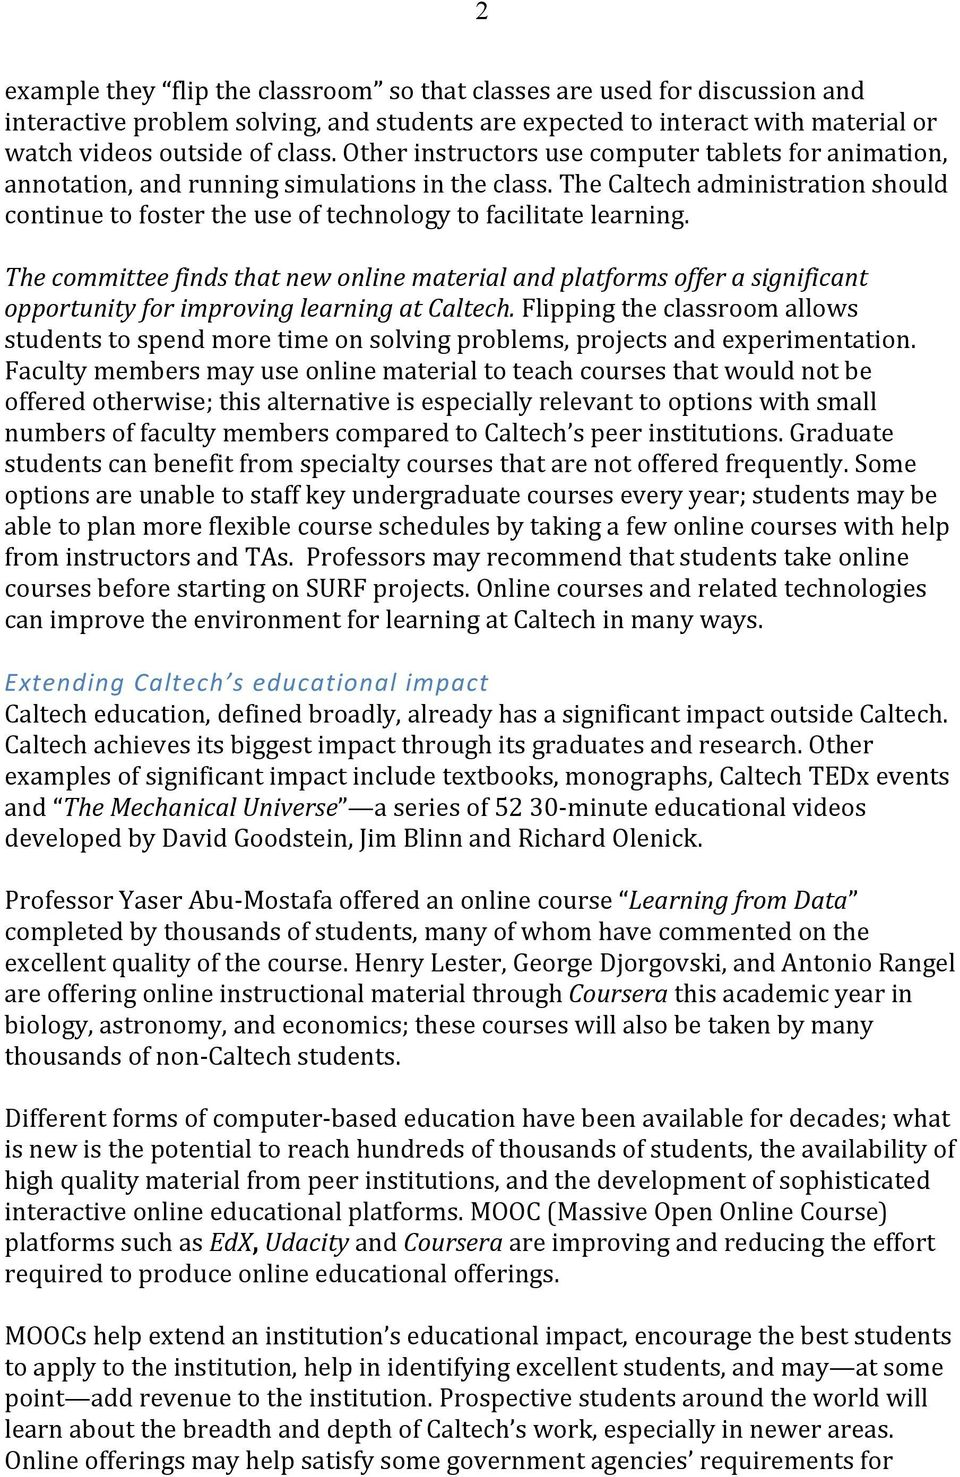 The Caltech administration should continue to foster the use of technology to facilitate learning.